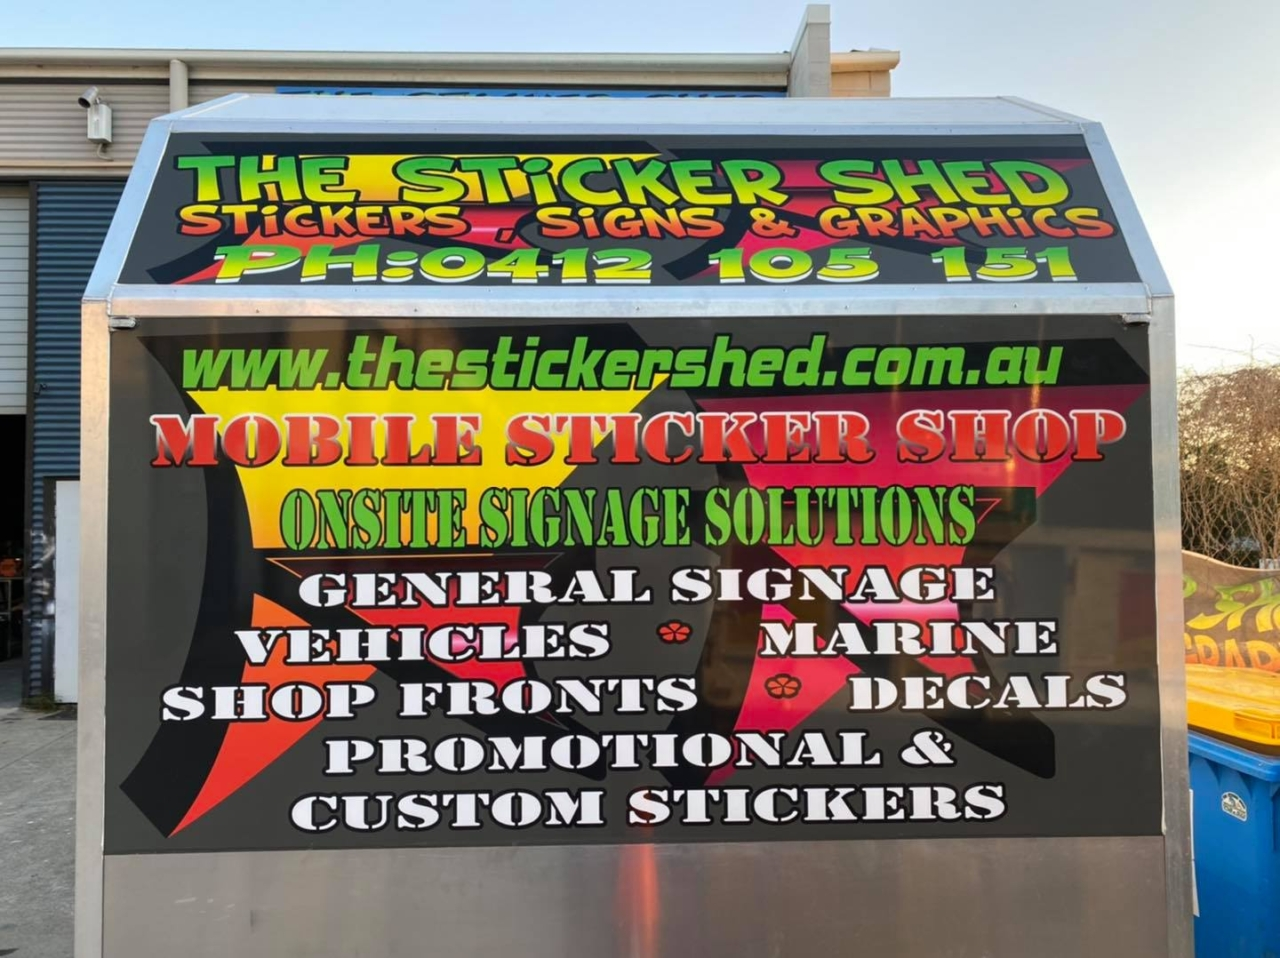 The Sticker Shed